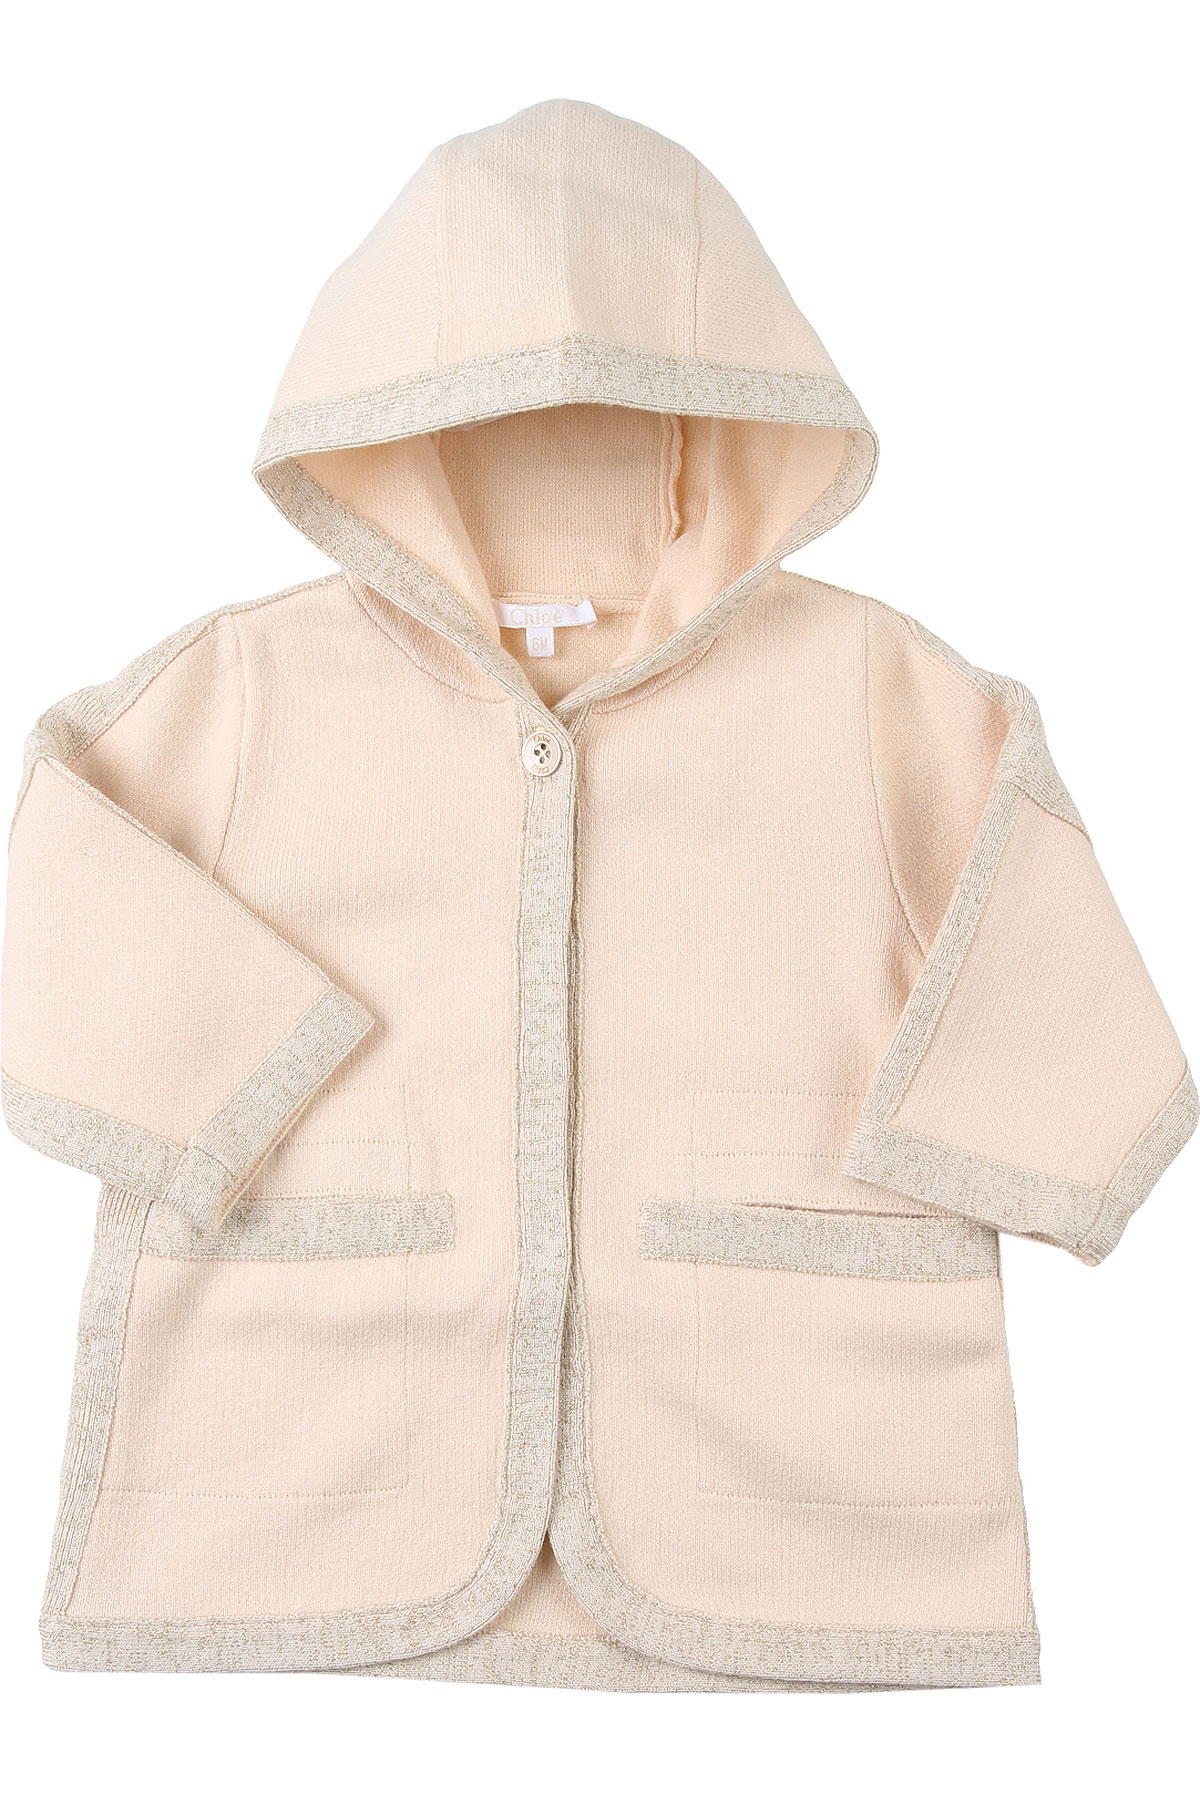 Chloe Baby Jacket for Girls On Sale, Rose, Cotton, 2019, 12M 2Y 6M